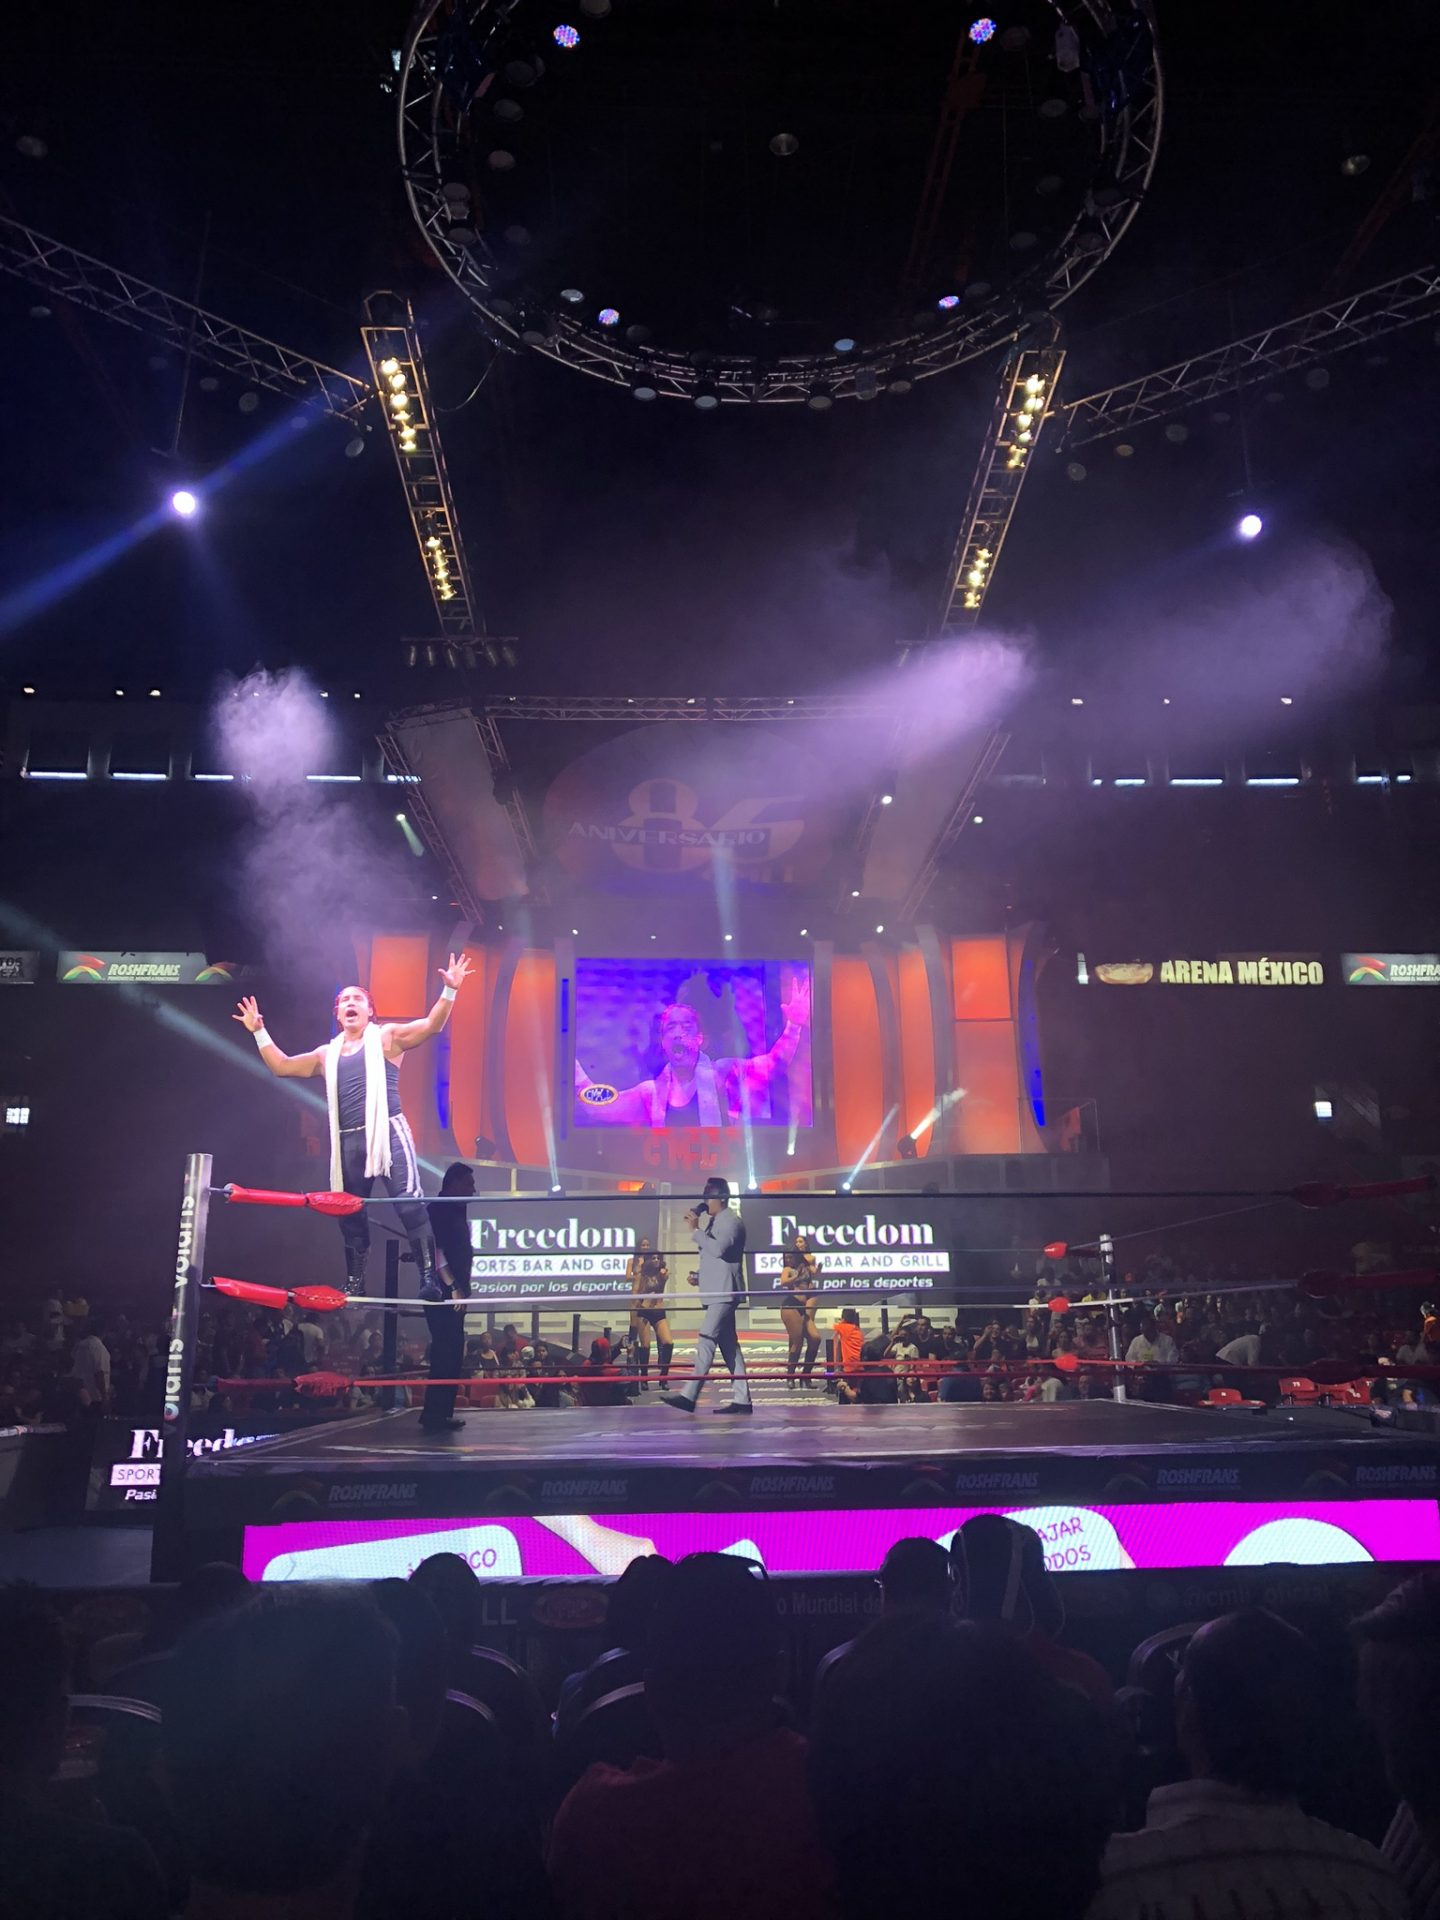 Lucha libre, Mexico City